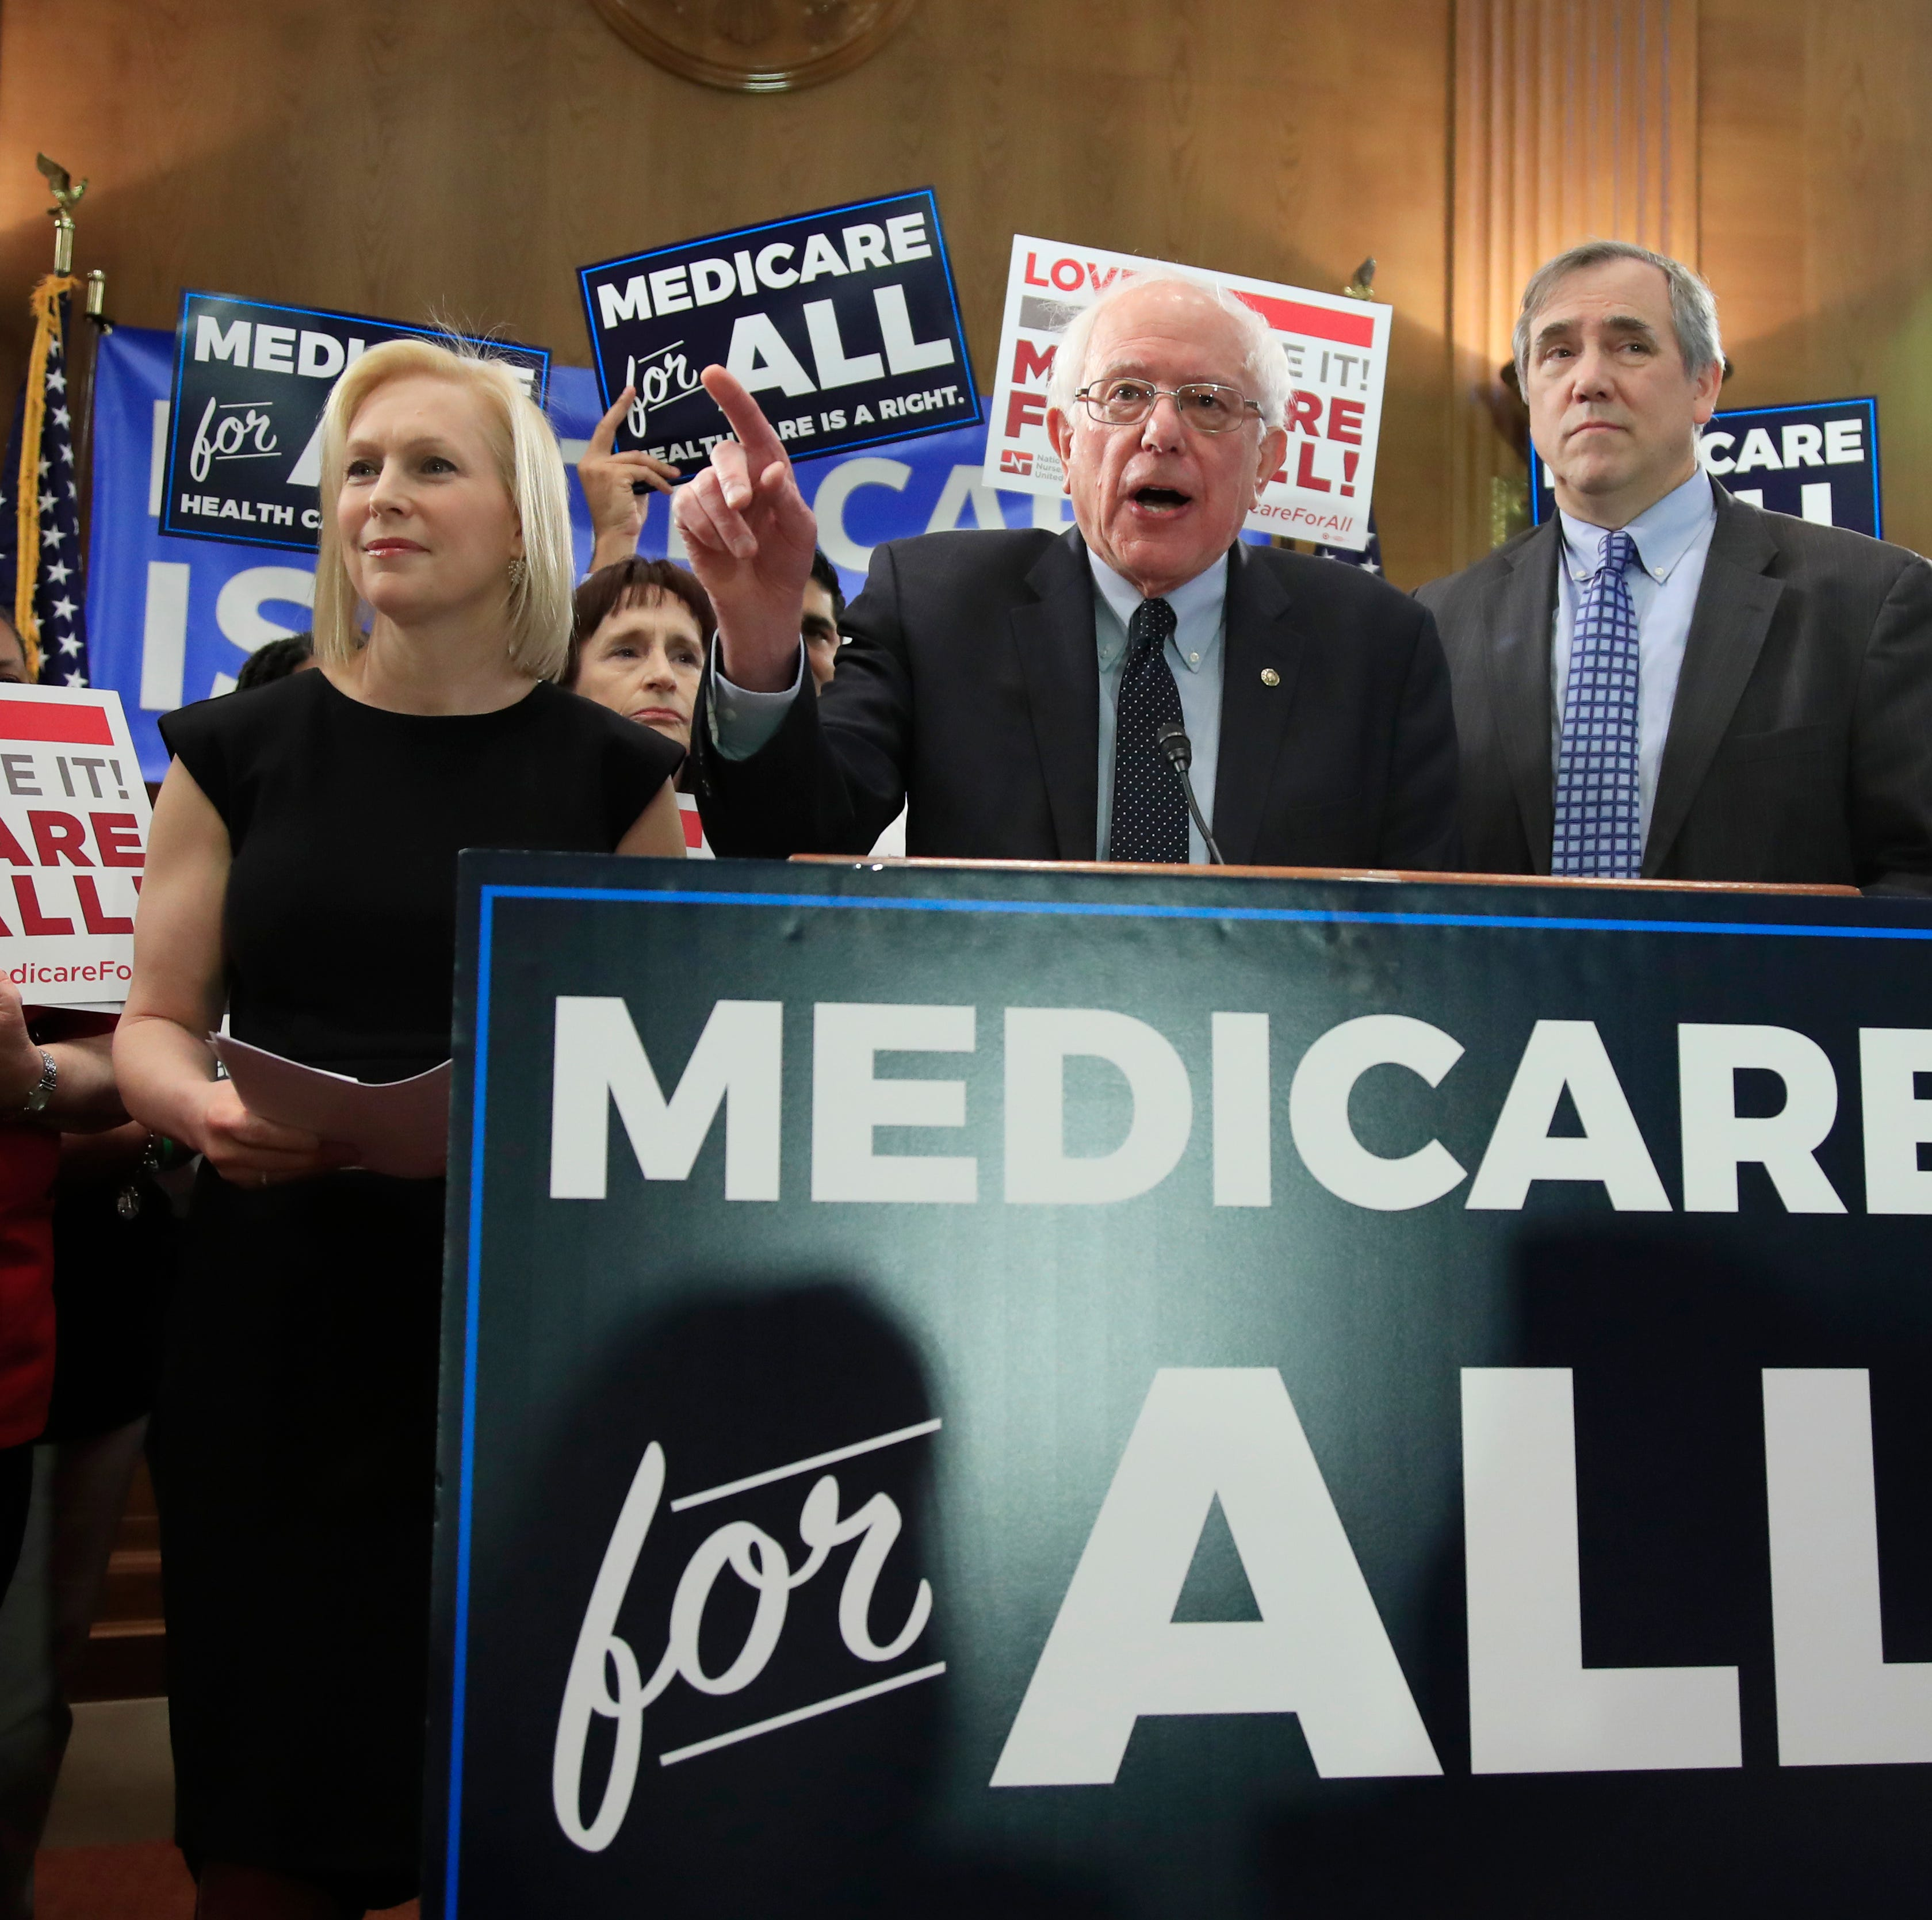 As Americans, we deserve better when it comes to health care